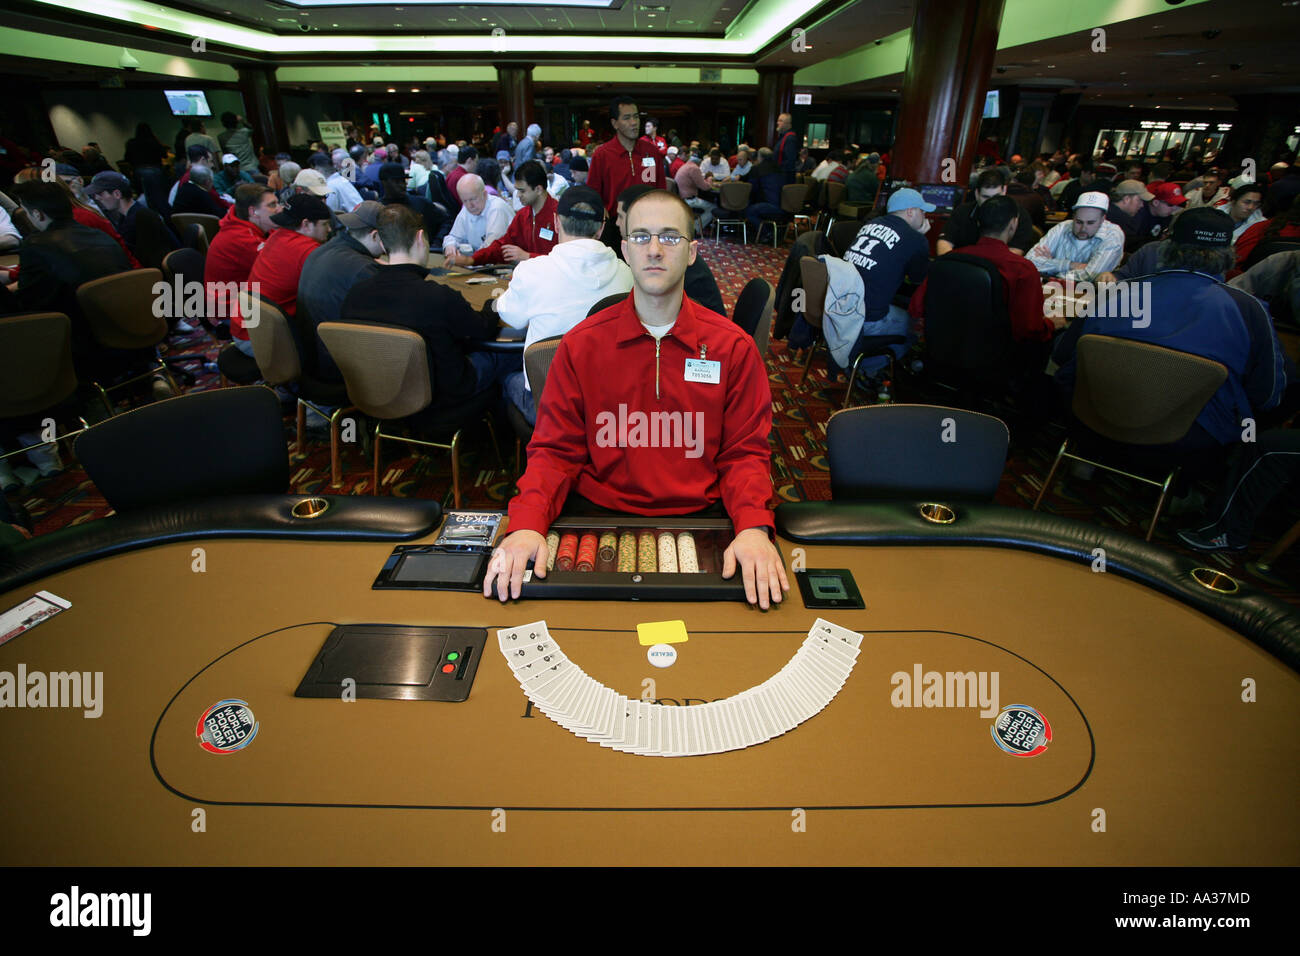 Poker dealer in the new Pker room at the Foxwoods Casino in Connecticut USA - Stock Image